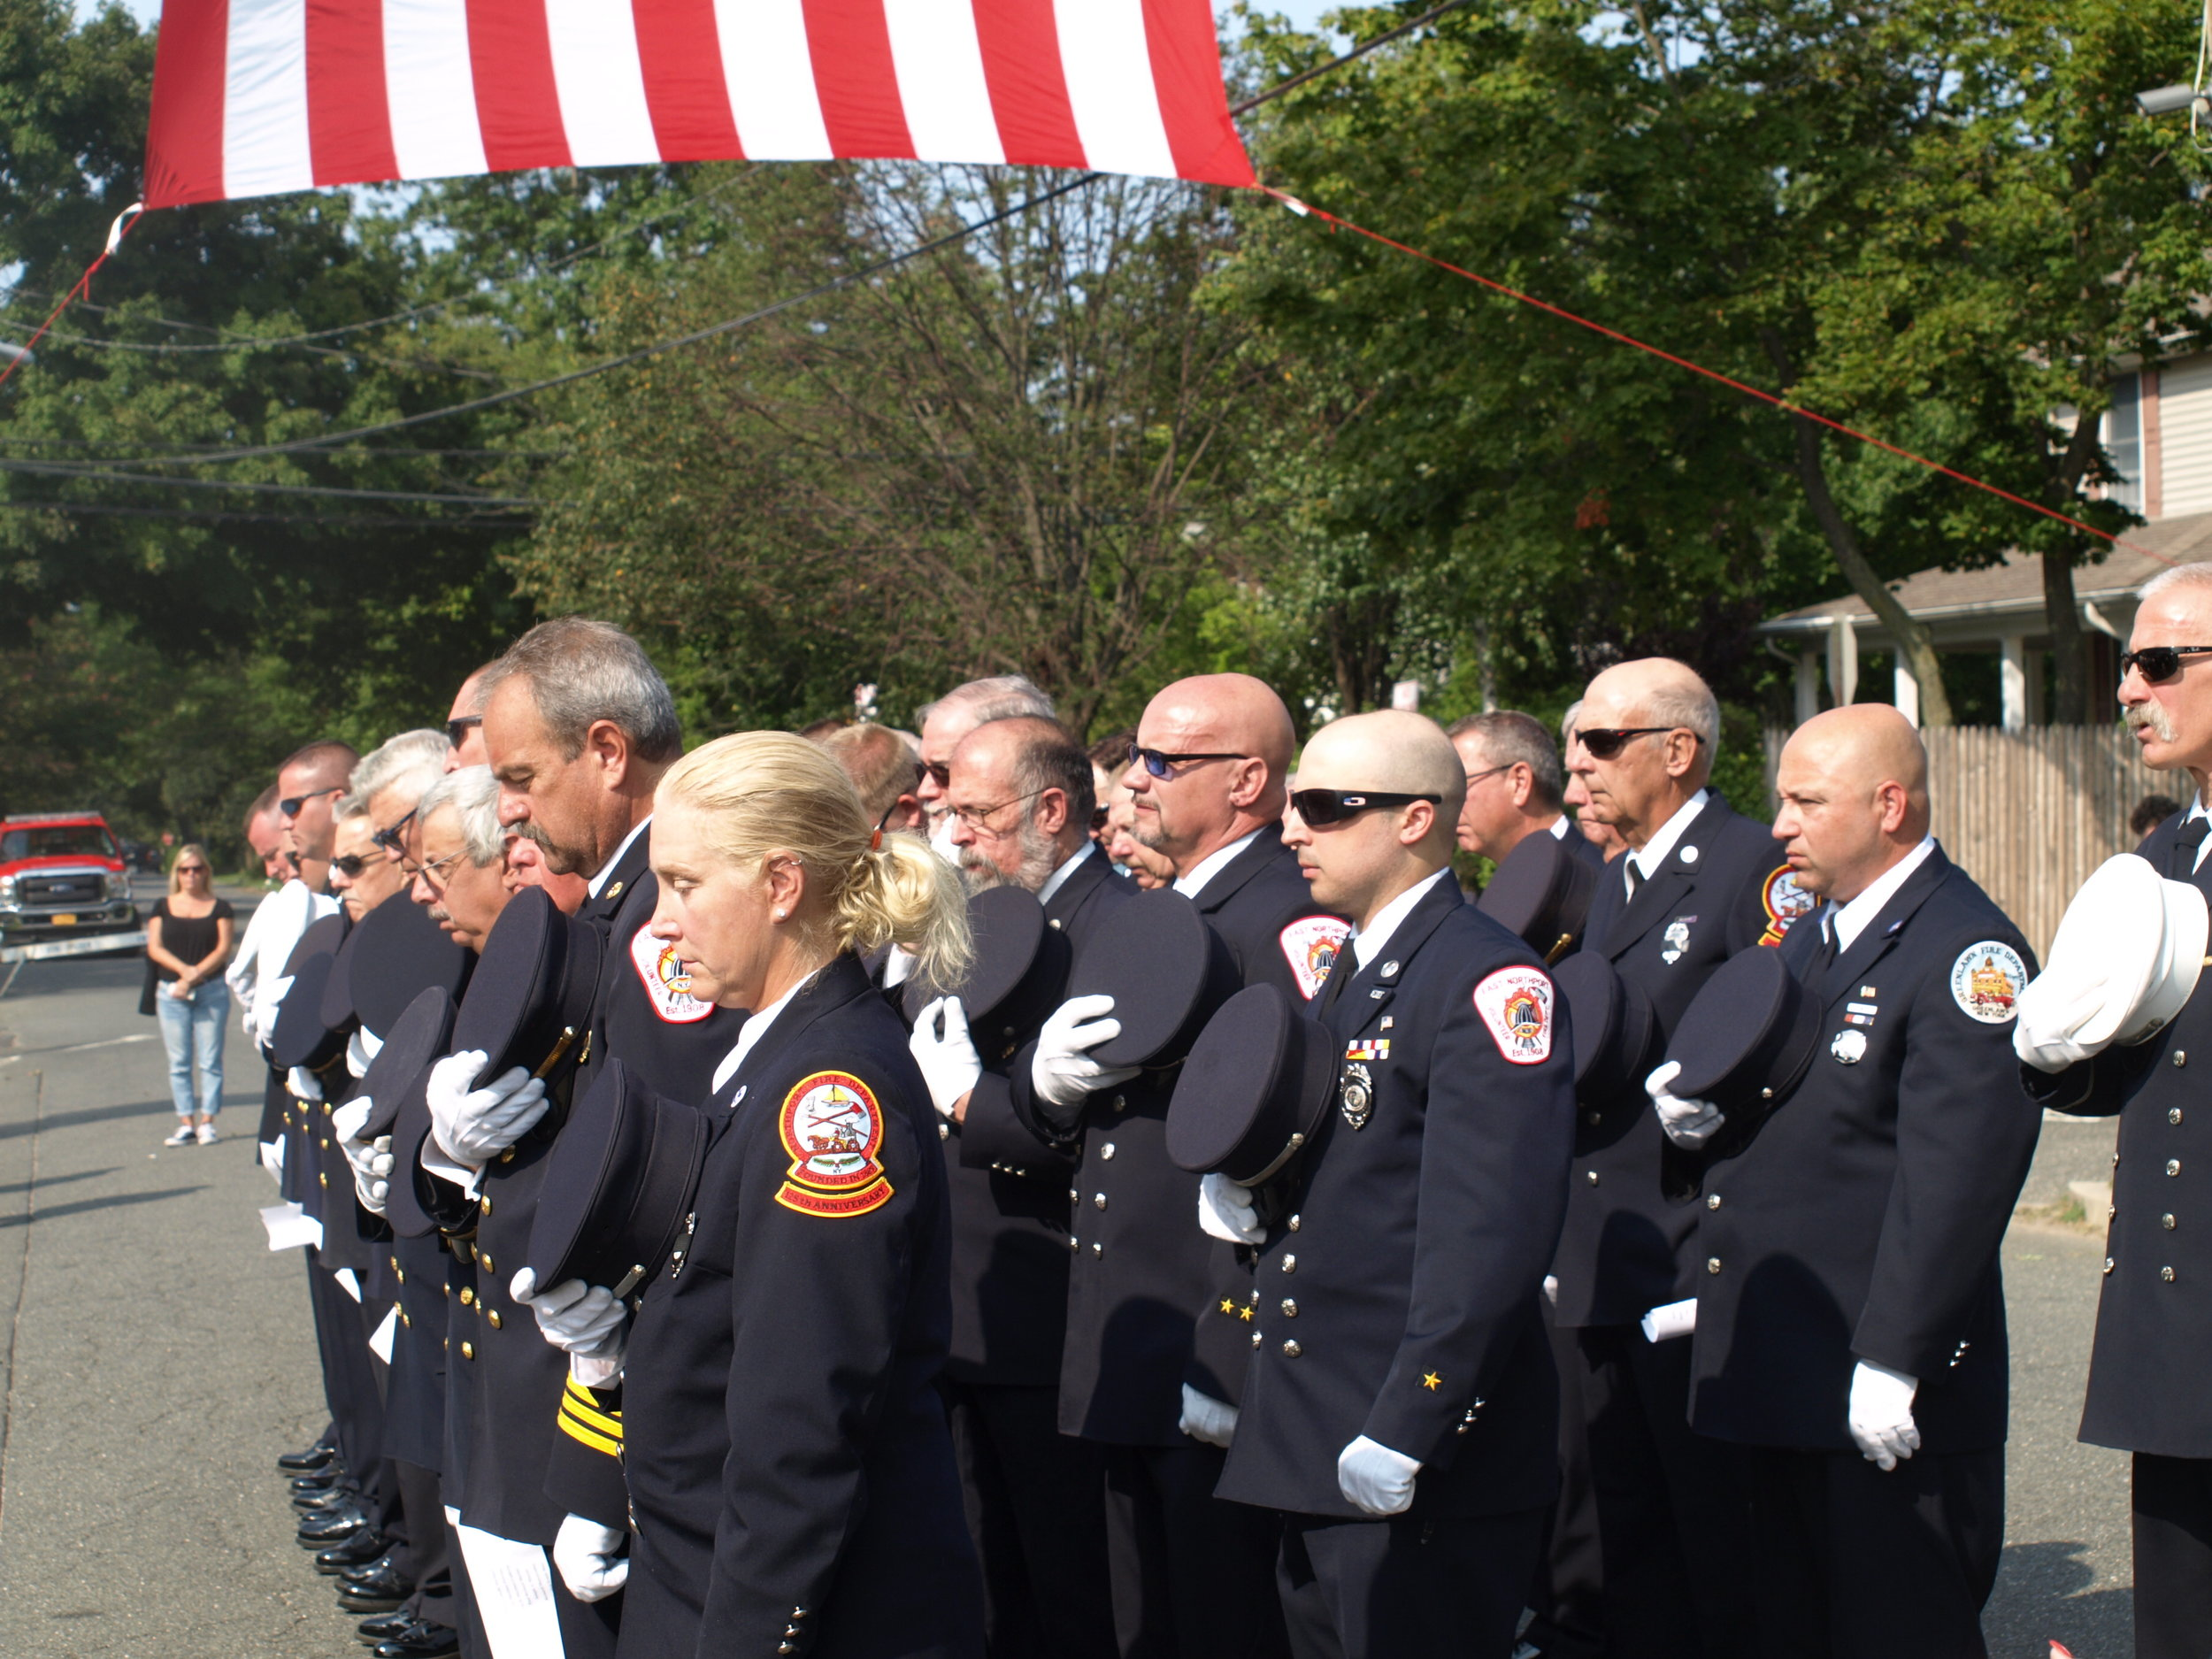 Firefighters and police officers from Long Island and New York City join East Northport firefighters to remember the victims of the terrorist attacks.   Long Islander News photos/Connor Beach